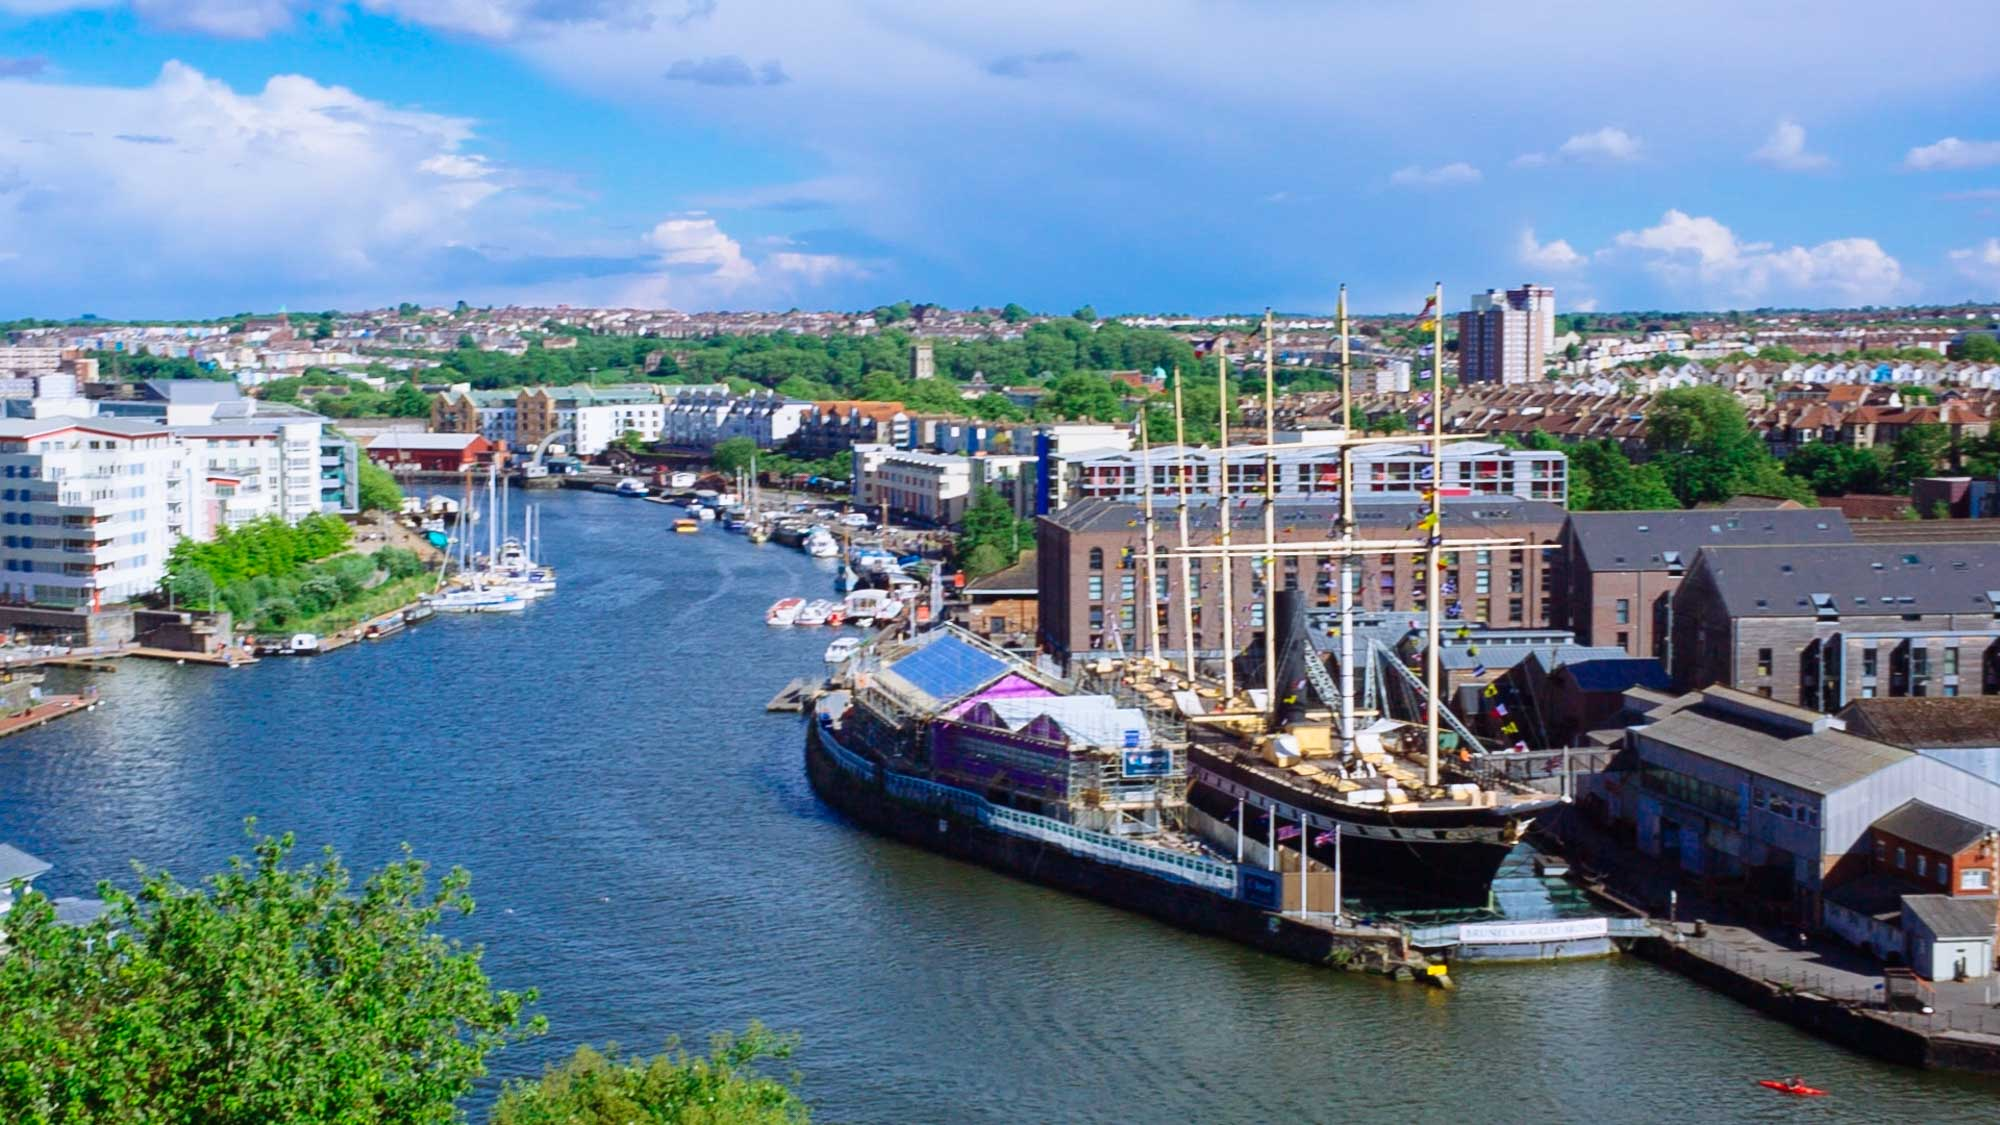 Things to do in Bristol - Visit the harbourside